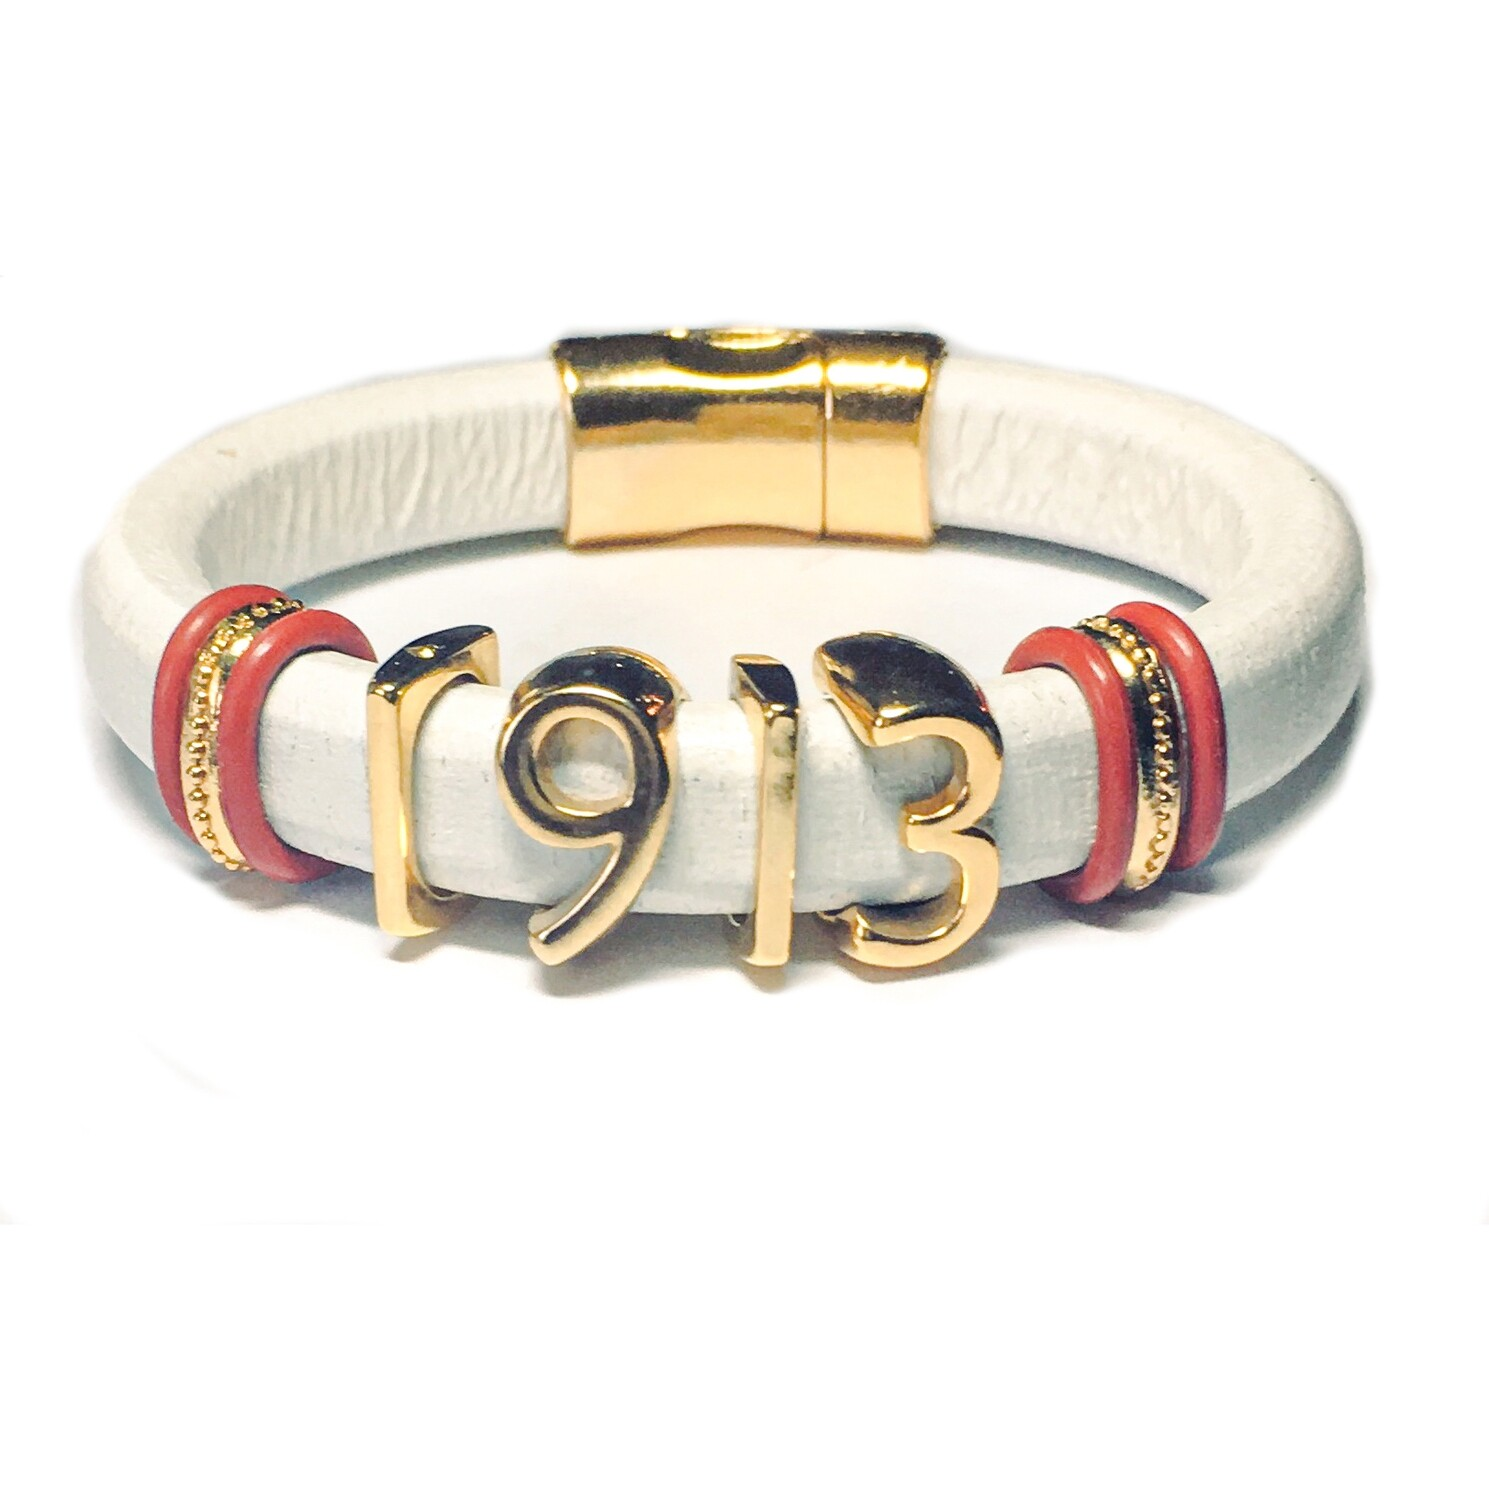 Bracelet | White And Gold 1913 Classy Creations Original